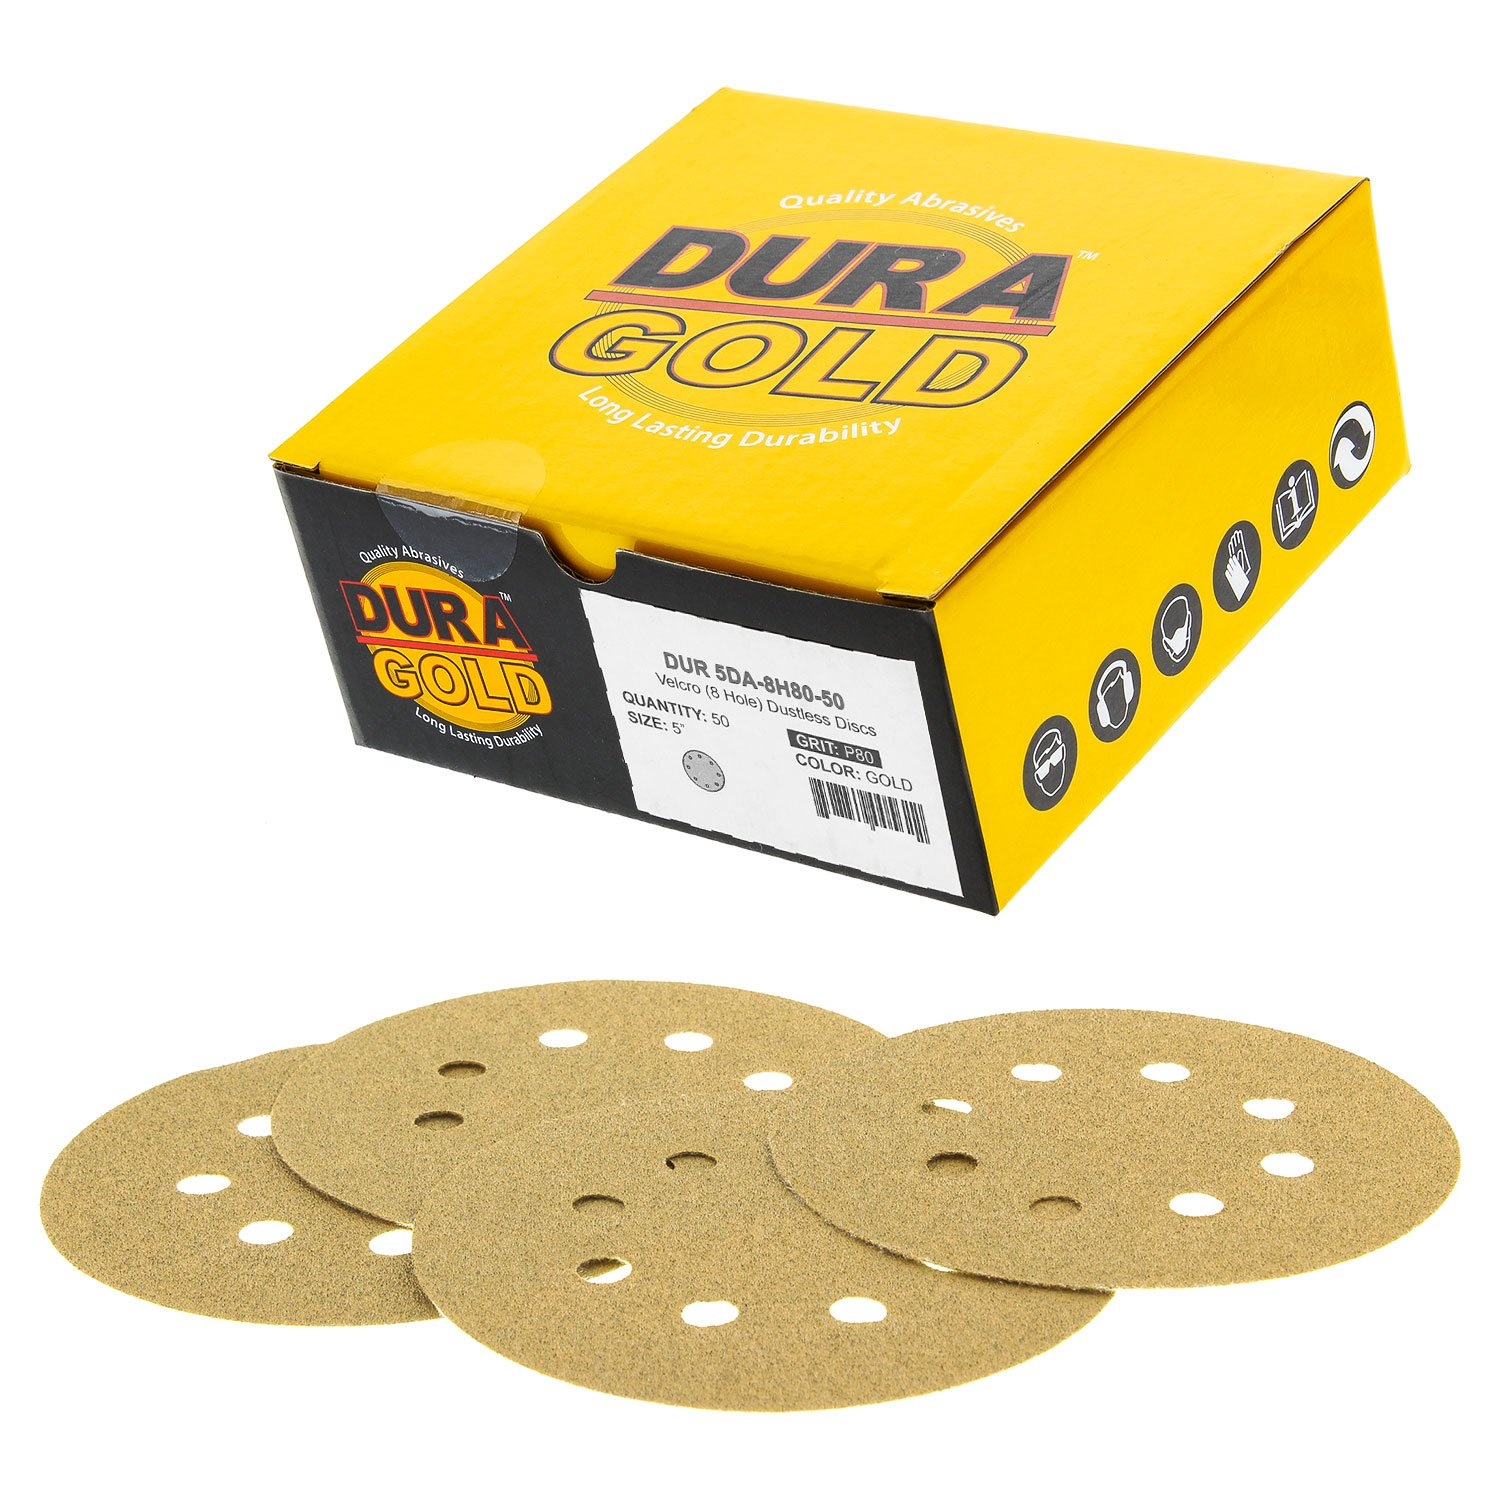 3000 Grit Premium Box of 50 Finishing Sandpaper Discs for Woodworking or Automotive 8-Hole Dustless Hook and Loop for DA Sander 5 Green Film Sanding Discs Dura-Gold